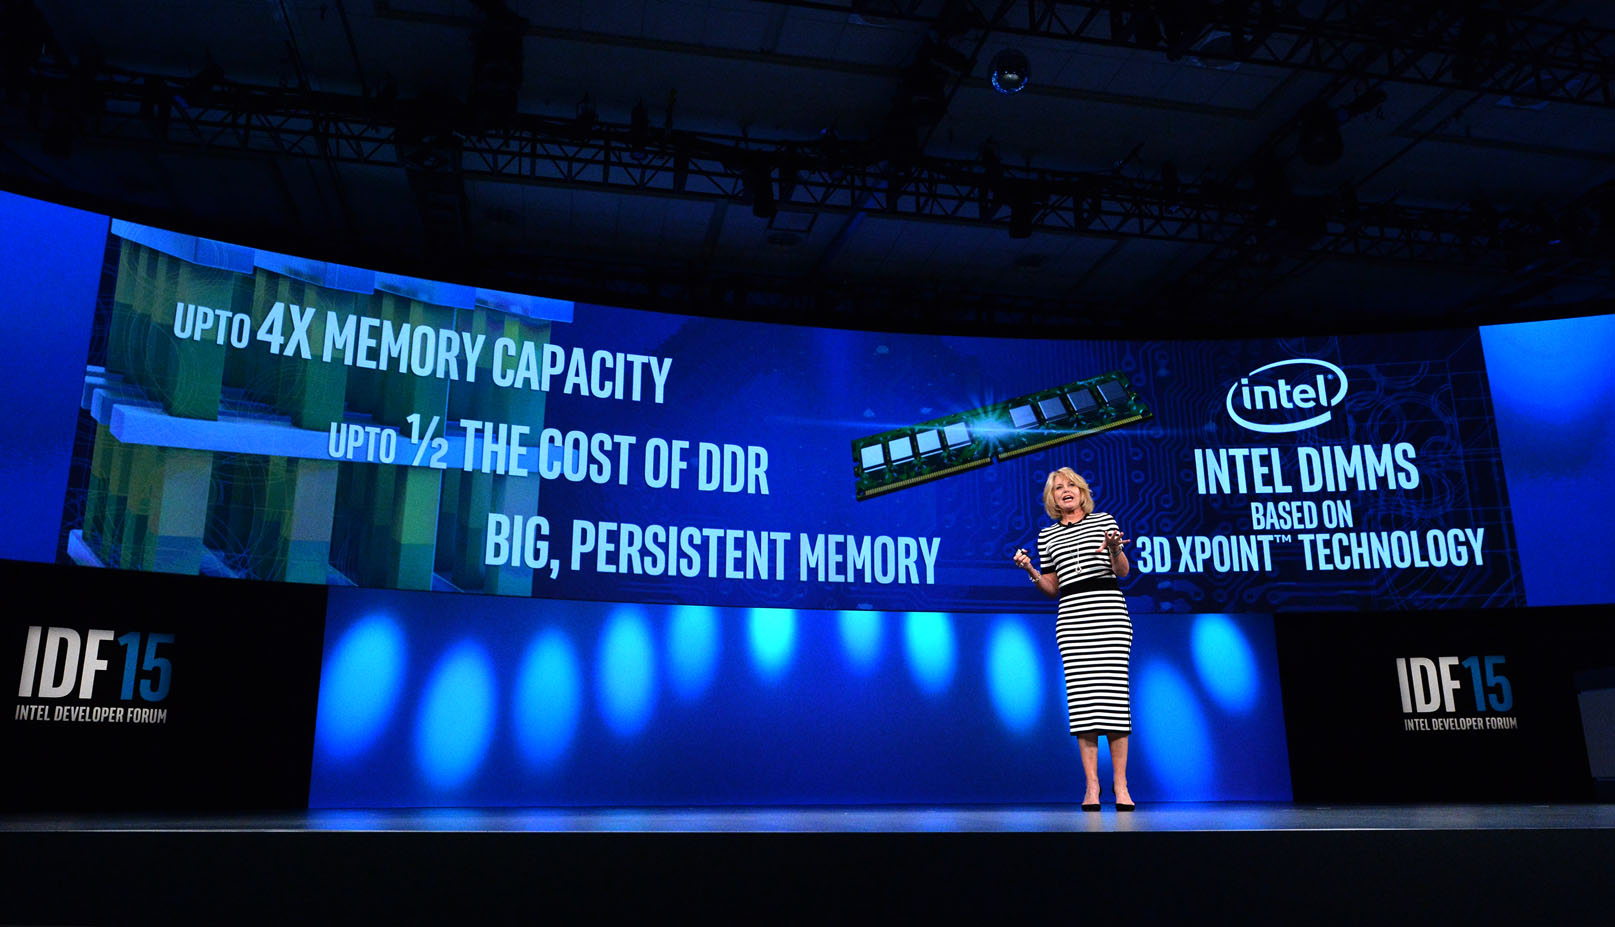 Performance Technology: Intel's 3D XPoint Memory Performance Tested, Up To 8X